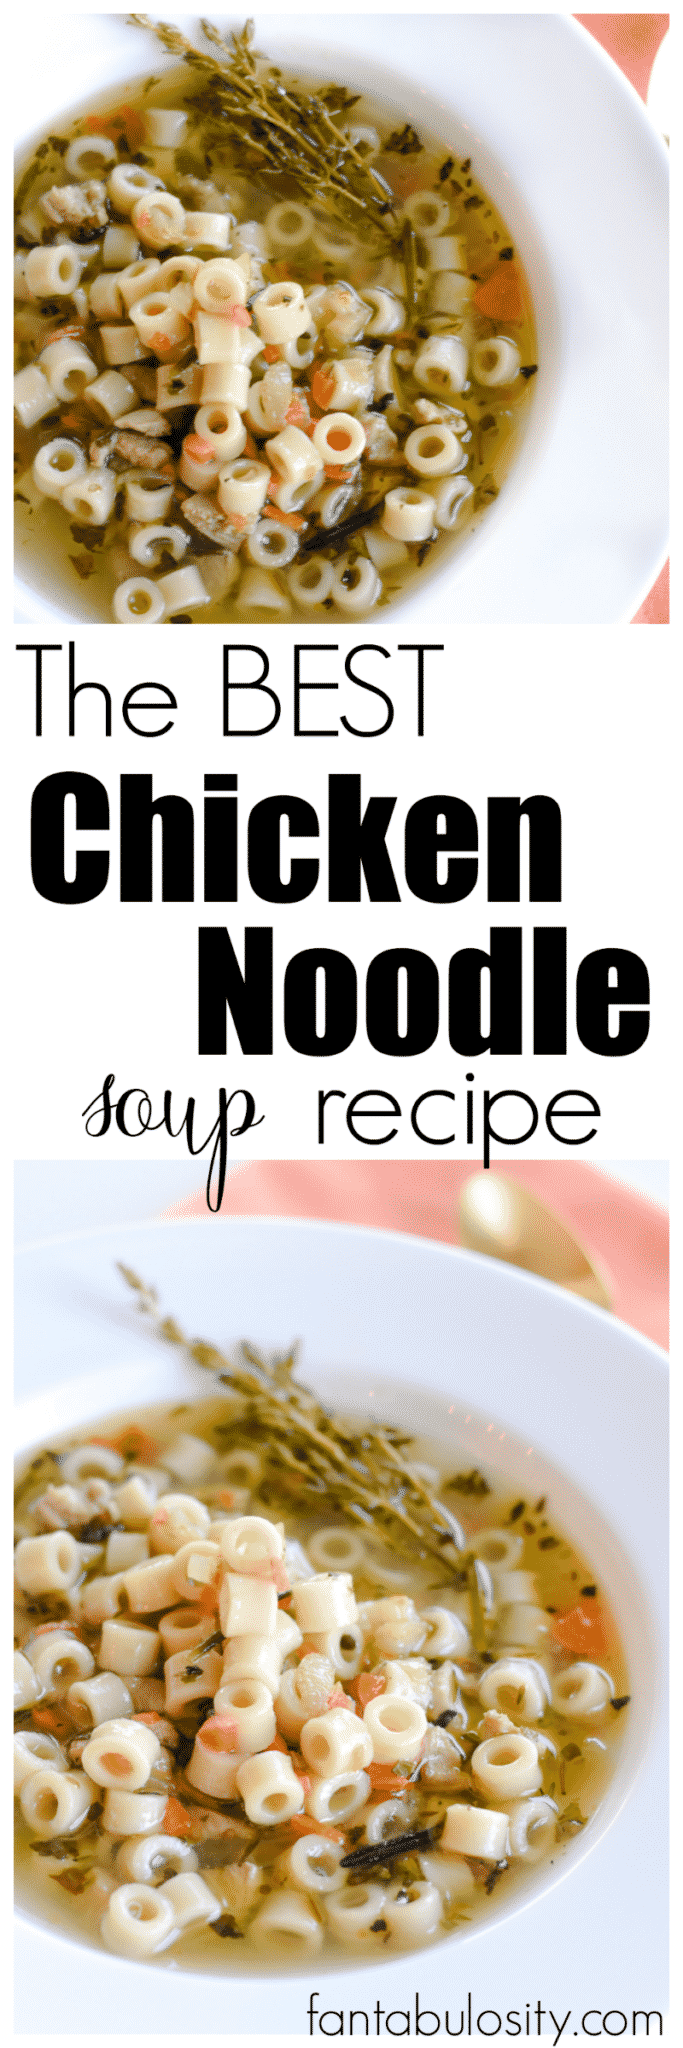 This is the BEST homemade chicken noodle soup recipe I've had, and it was so quick and easy! Homemade